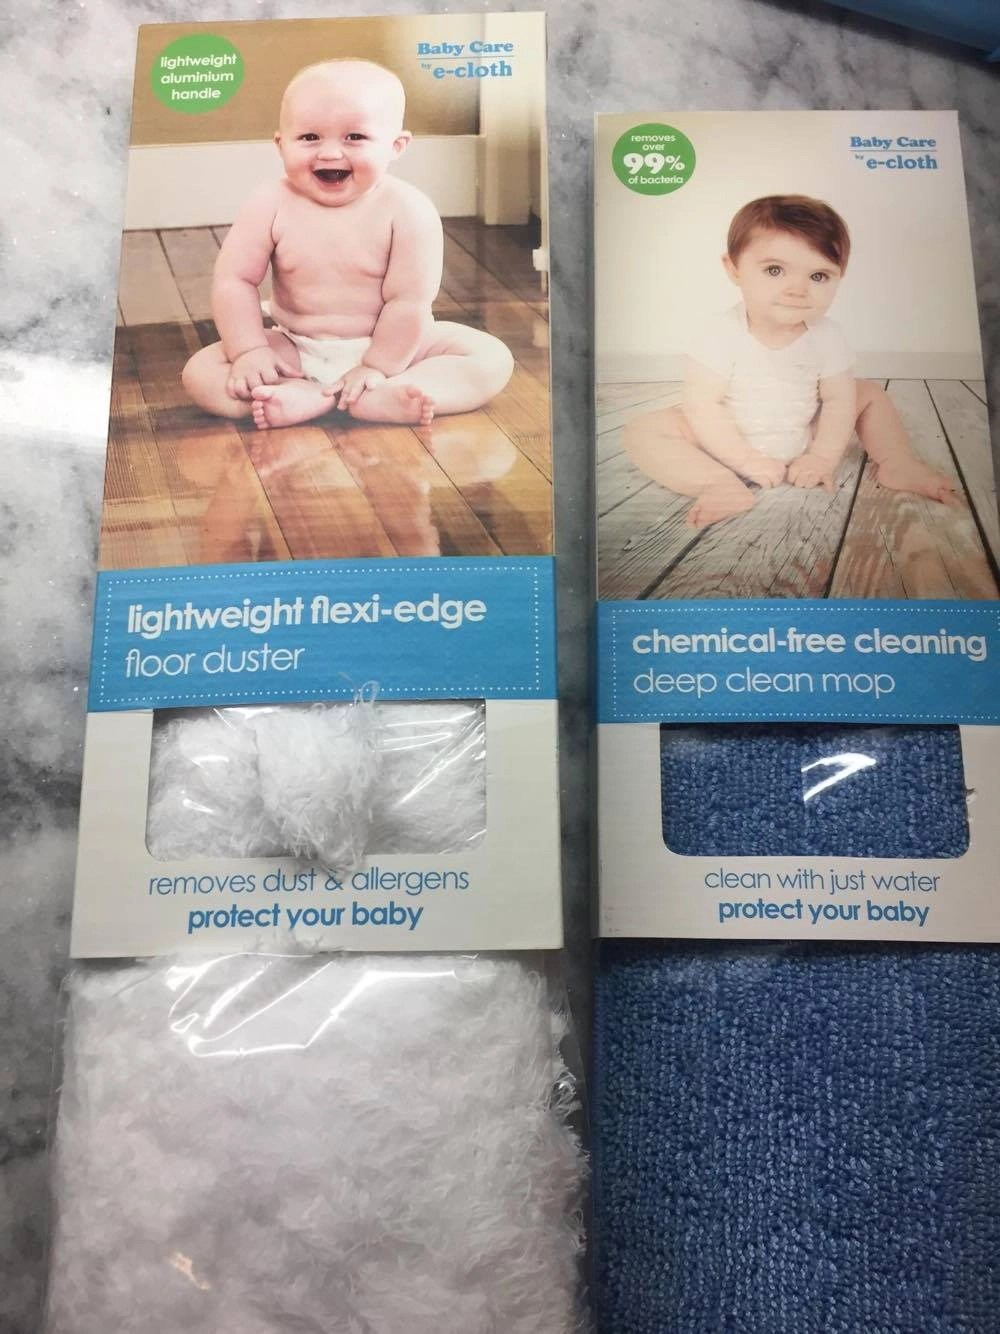 Chemical free cleaning deep cleaning mop